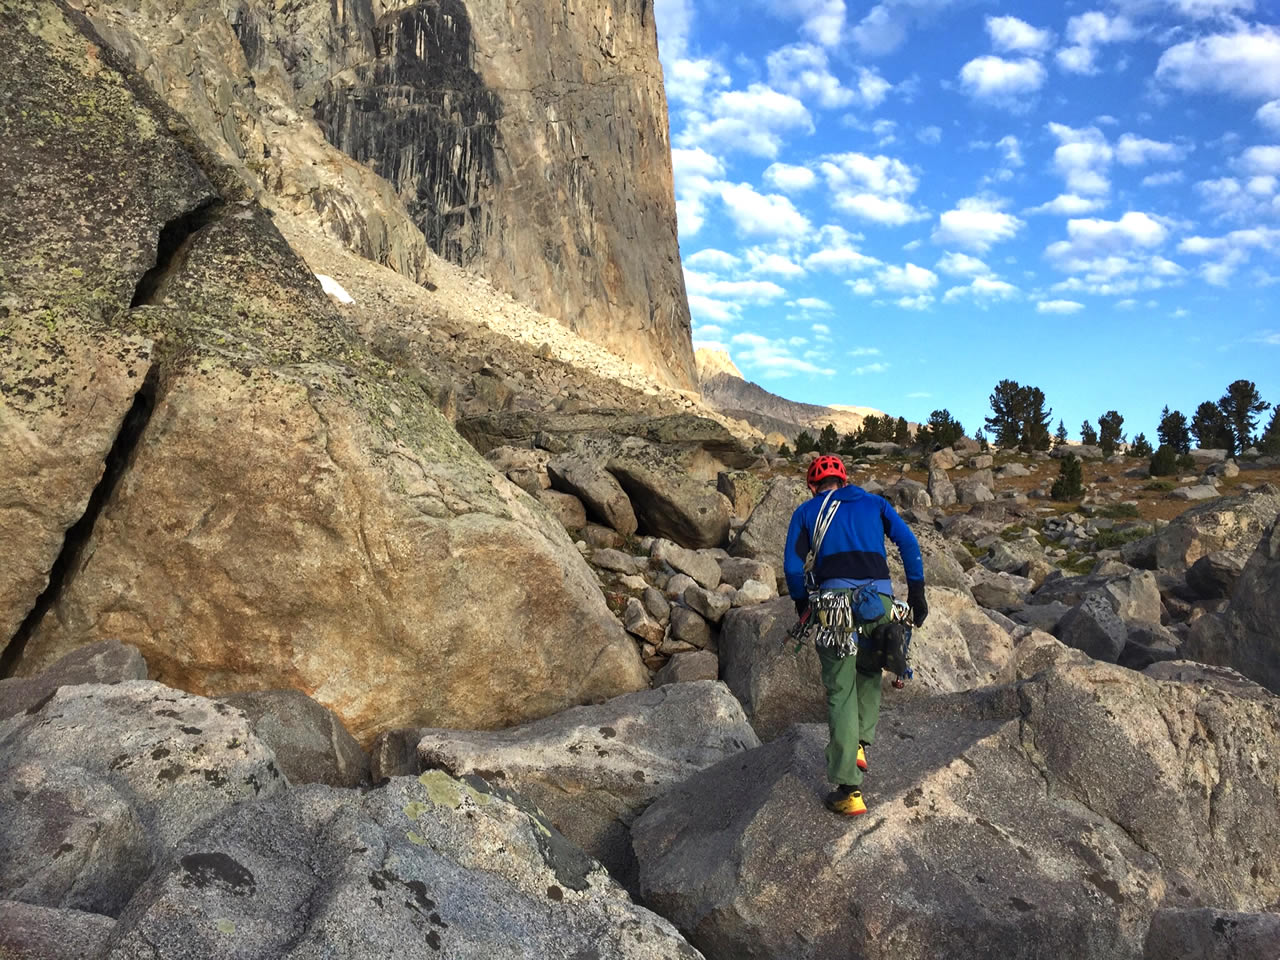 Tommy Caldwell heads to the start of the route. [Photo] Adam Stack